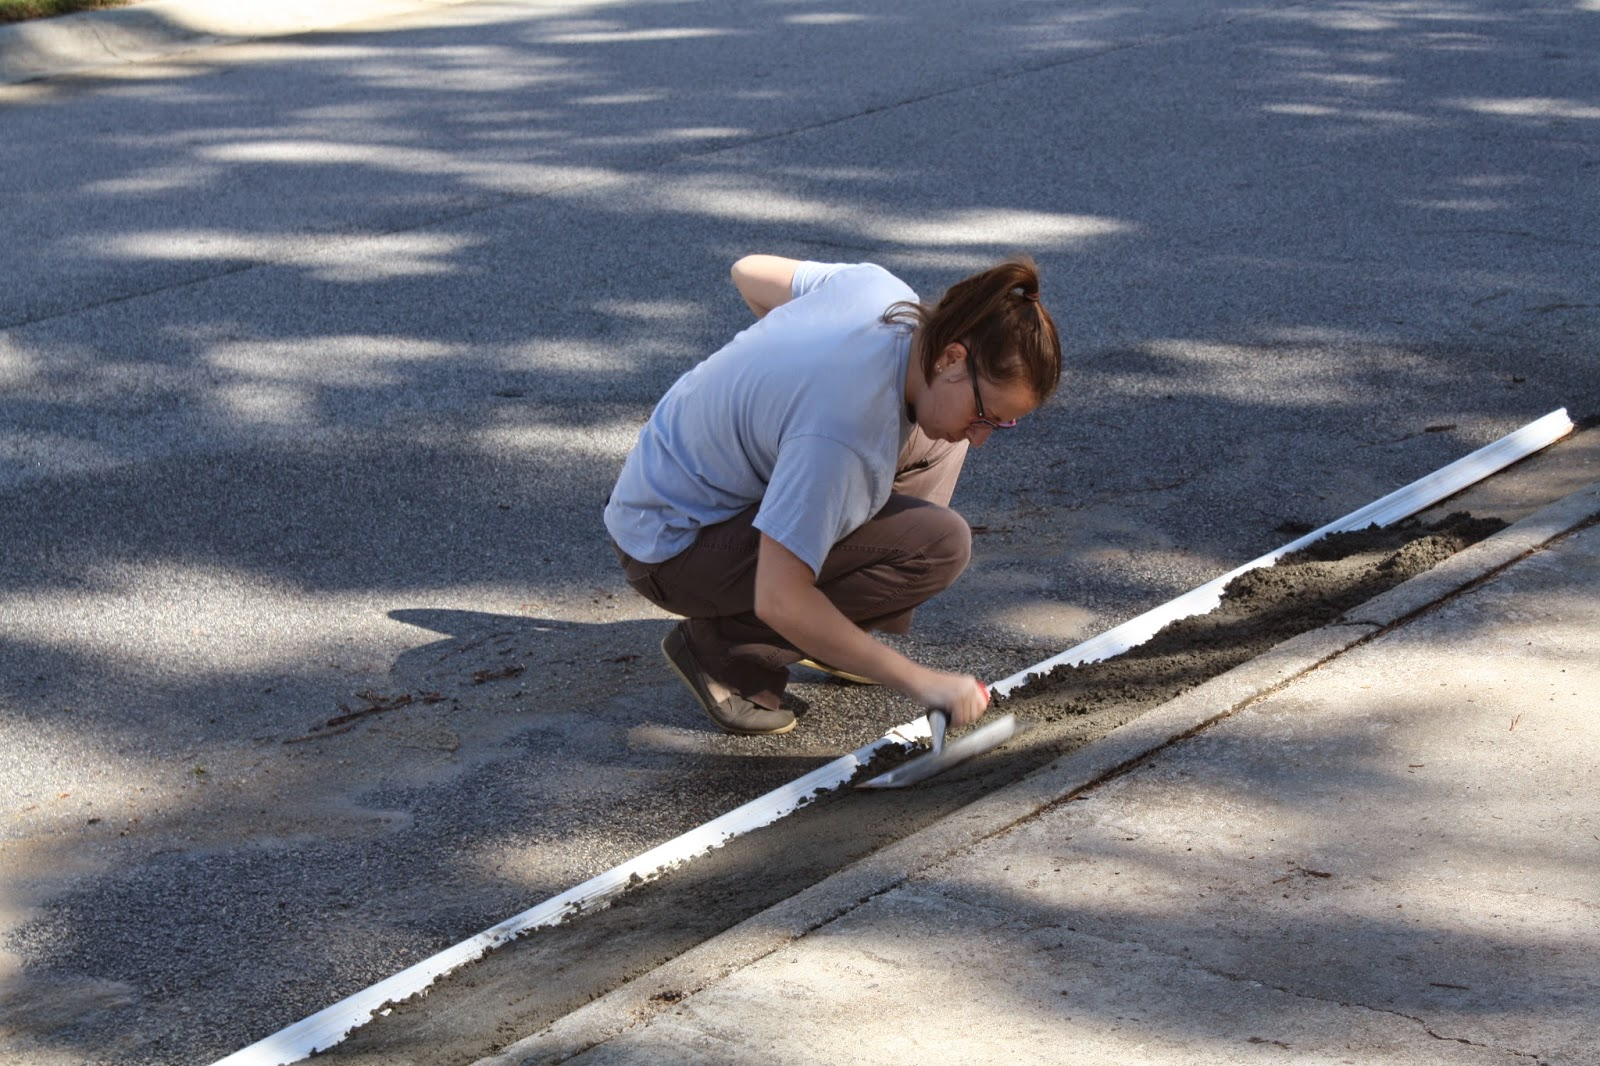 A Buyer's Guide to Rubber Ramps For Rolled Curb Driveway Entries